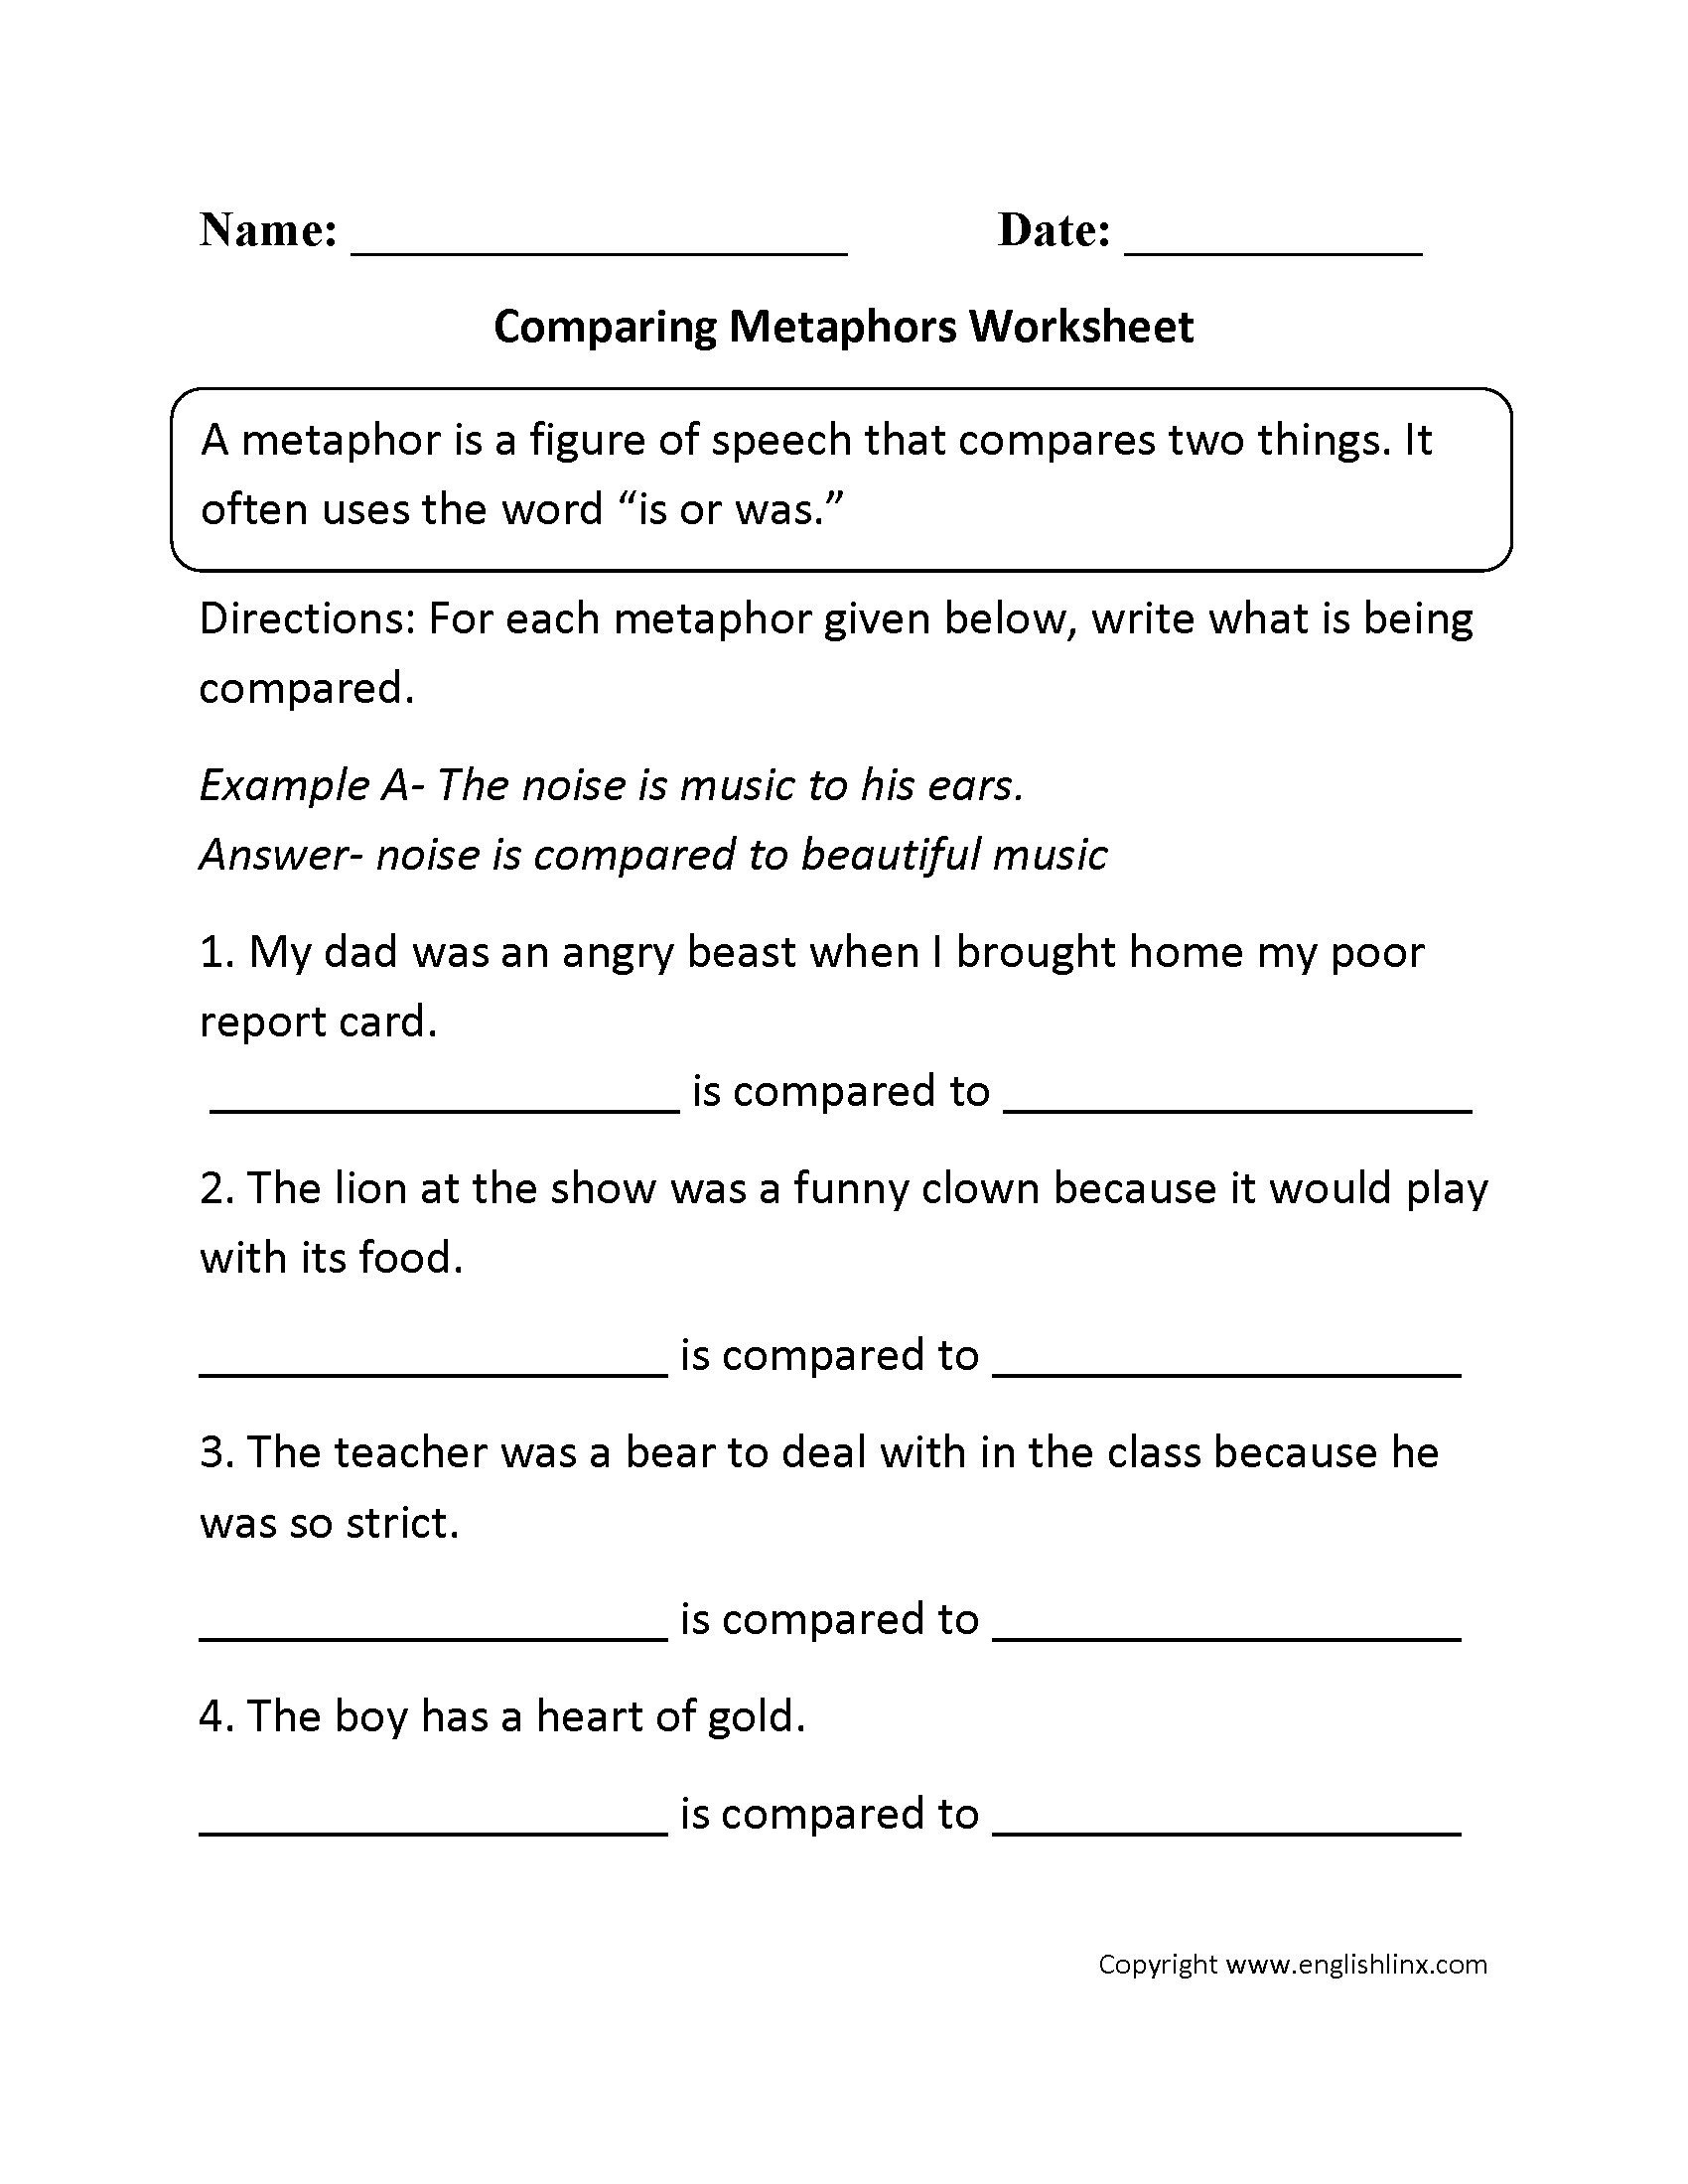 Englishlinx metaphors worksheets comparing metaphors worksheet robcynllc Images